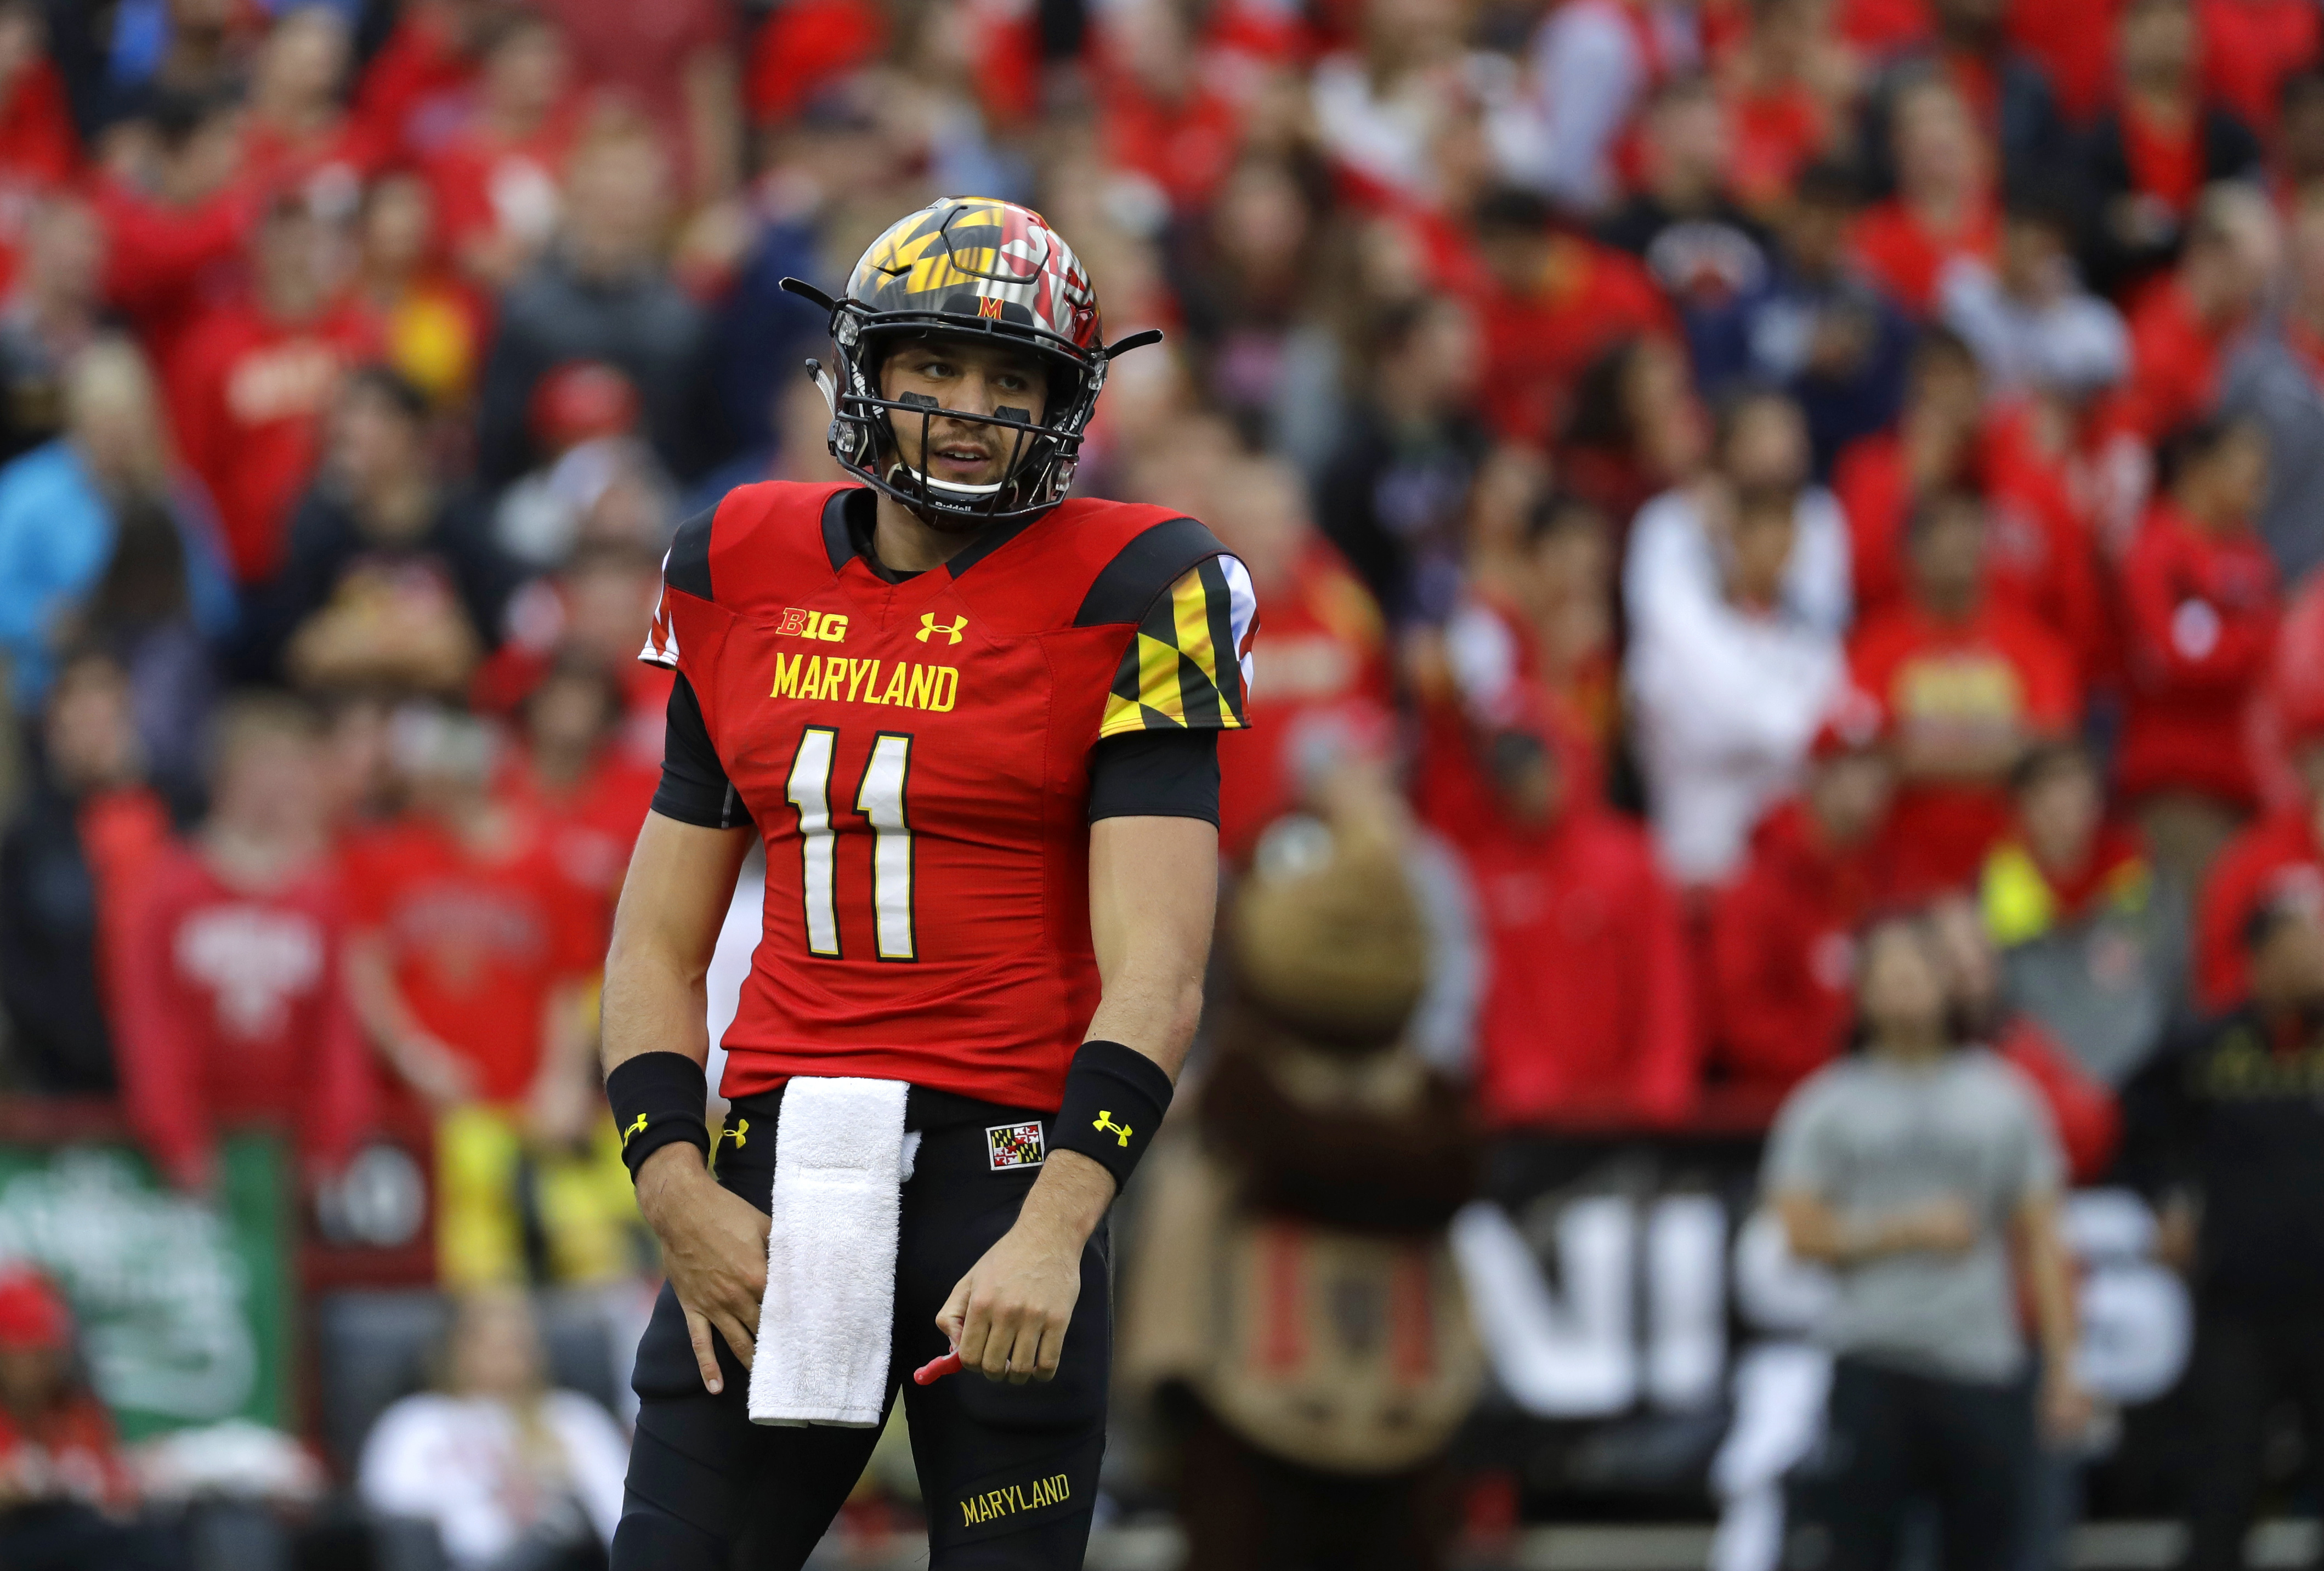 FILE - In this Oct. 1, 2016, file photo, Maryland quarterback Perry Hills walks on the field in the first half of an NCAA college football game against Purdue, in College Park, Md. Hills hopes his ailing left shoulder will heal enough to allow him to suit